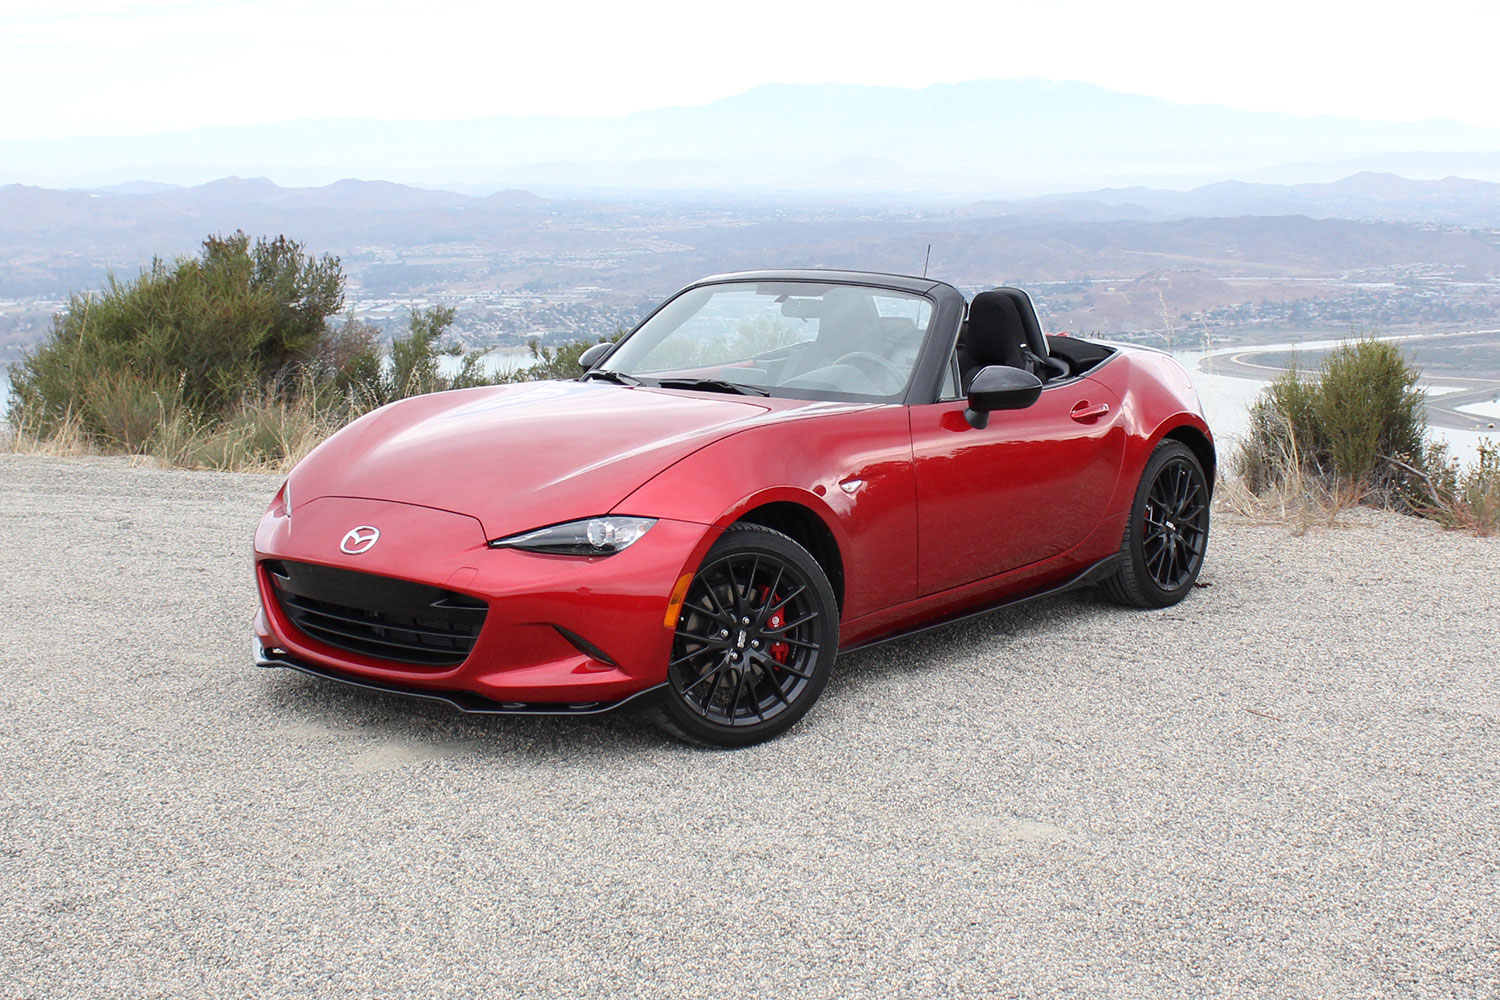 Luxury 2016 Mazda MX5 Miata Review  Digital Trends